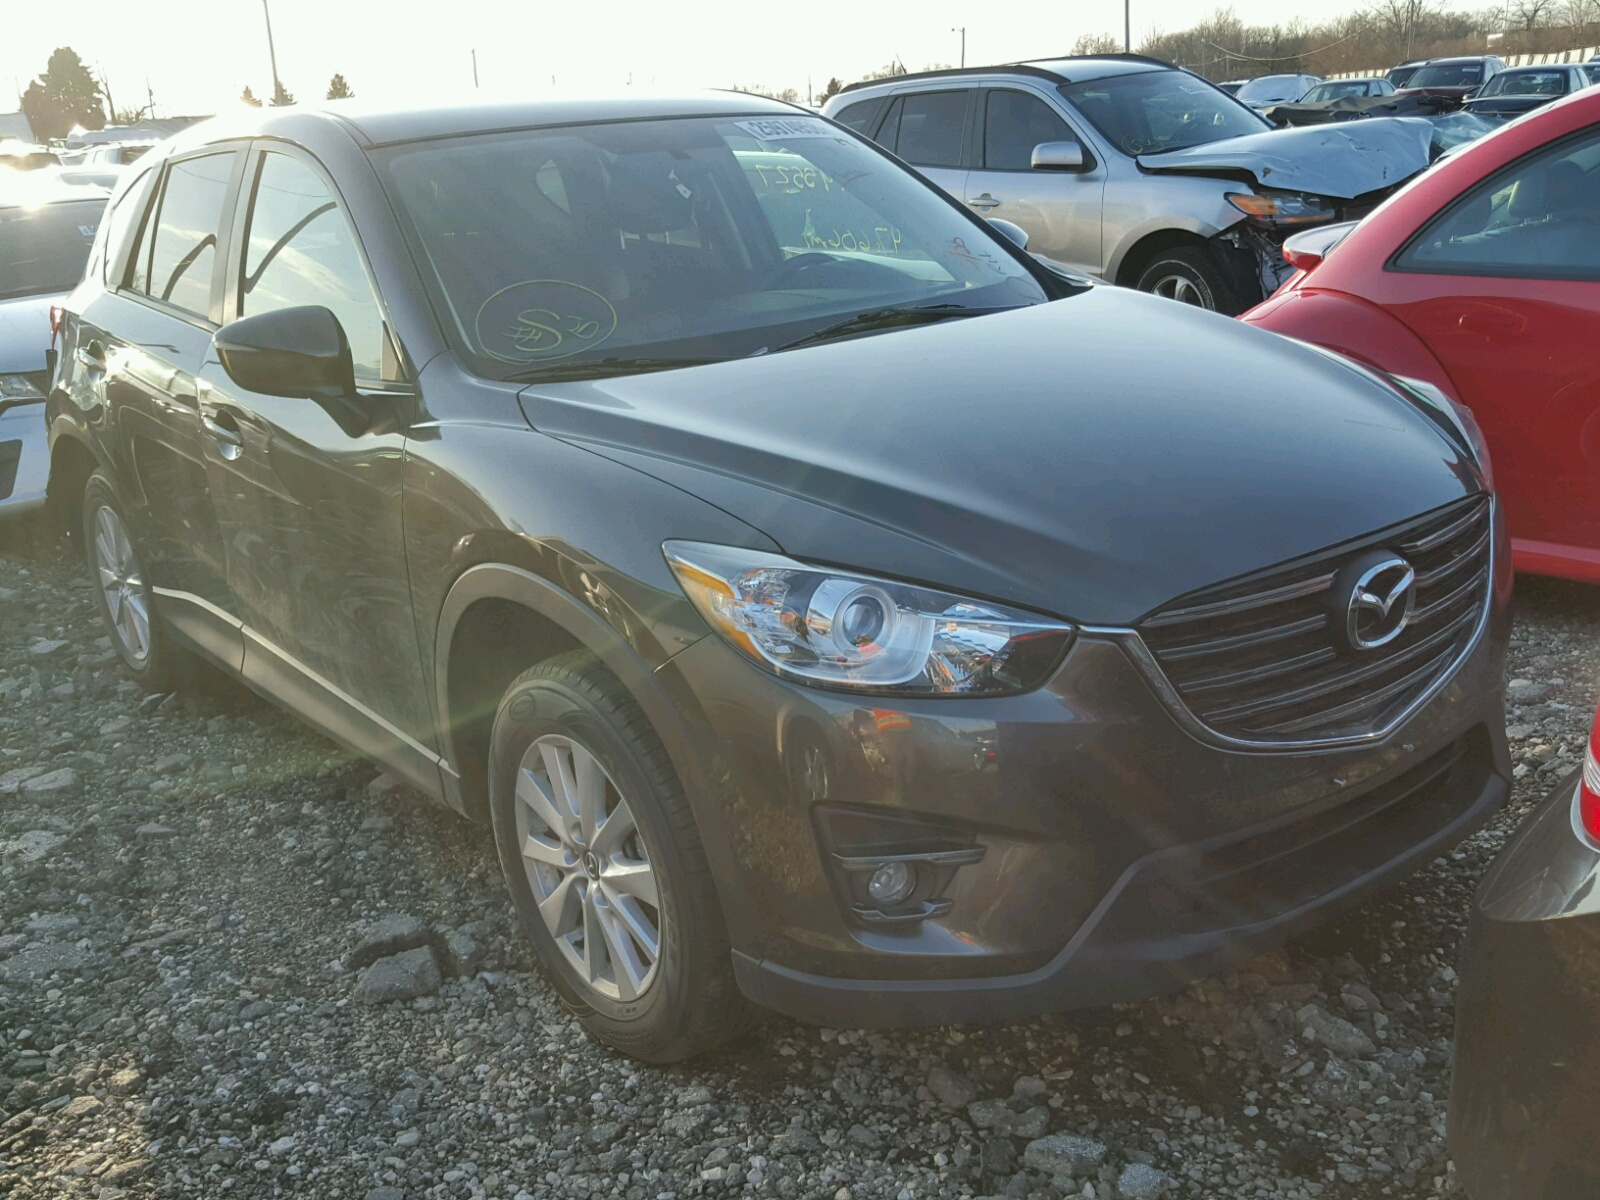 Auto Auction Ended On VIN JMBLHA MAZDA S In NC - Mazda 290